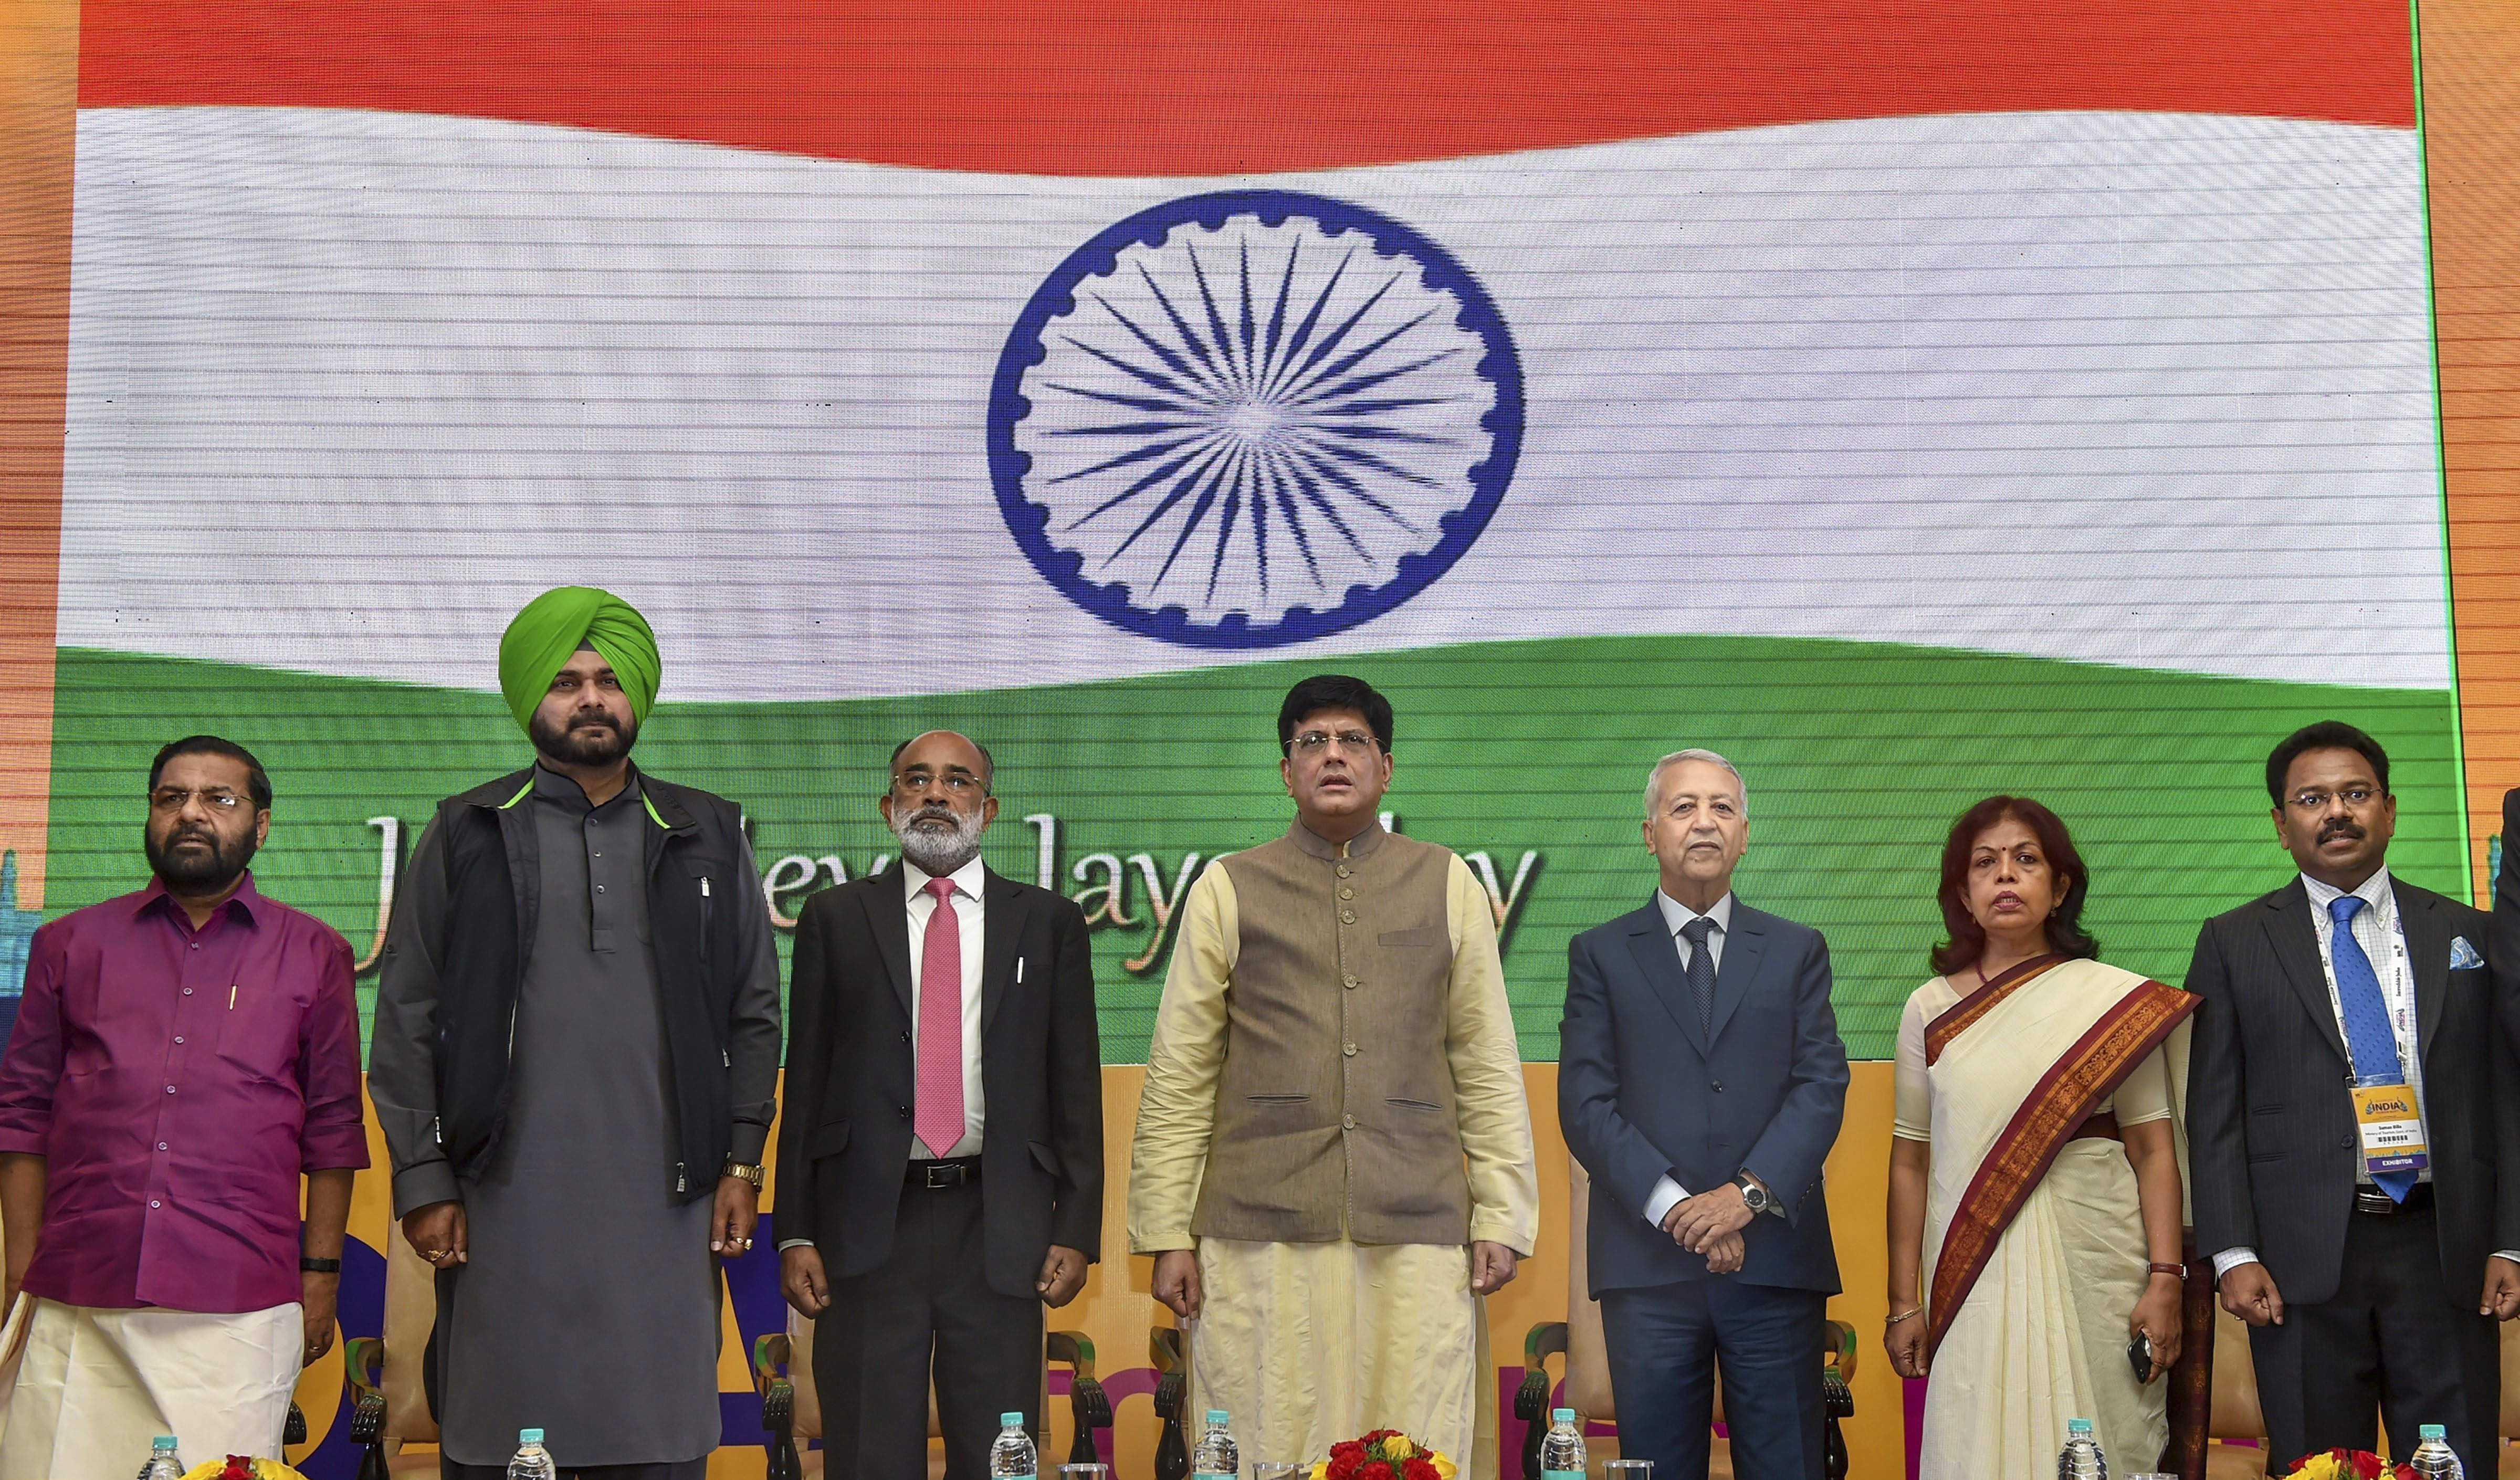 Union Minister for Railways, Coal and Corporate Affairs, Piyush Goyal, Union Tourism Minister K J Alphons, Punjab Cabinet Minister Navjot Singh Sidhu and Morocco's minister of tourism, Mohamed Sajid during the inauguration of 'India Tourism Mart 2018', in New Delhi - PTI